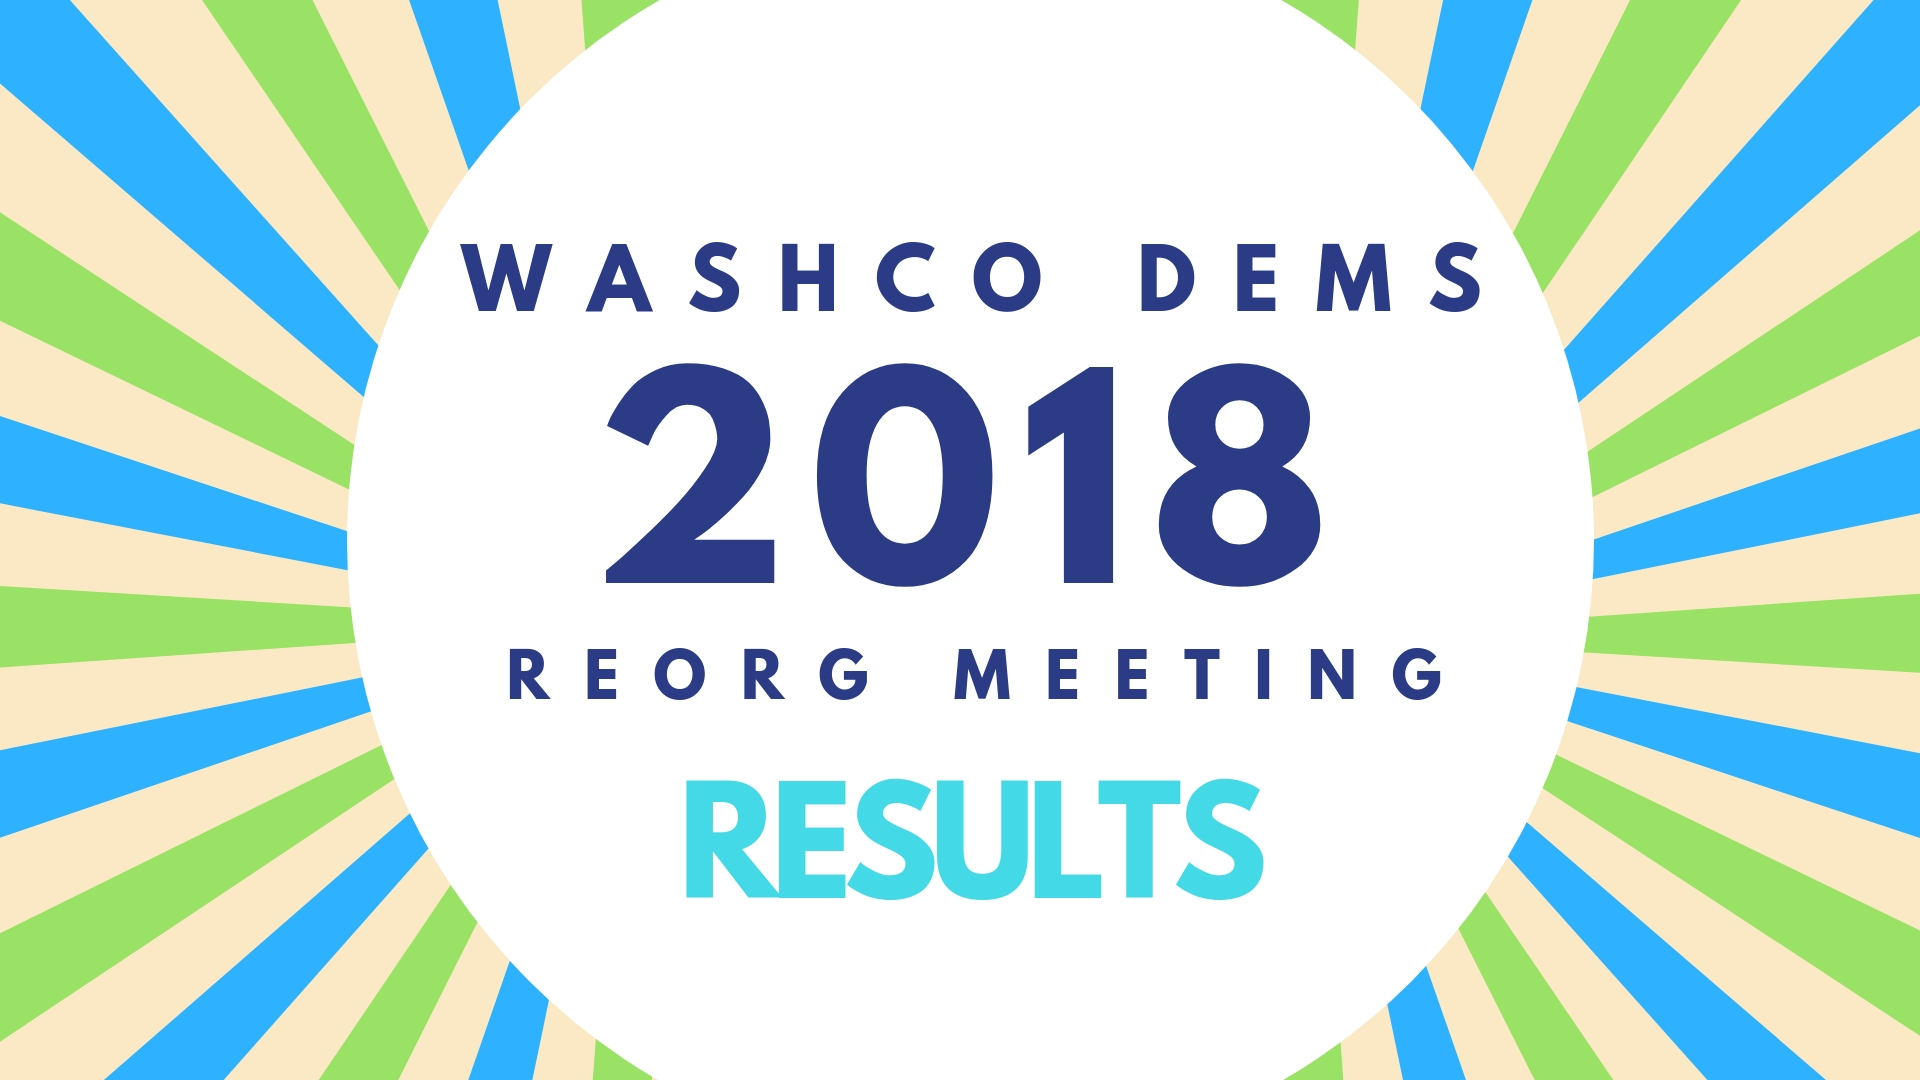 Washington County Democrats: 2018 Reorganization Meeting Voting Results